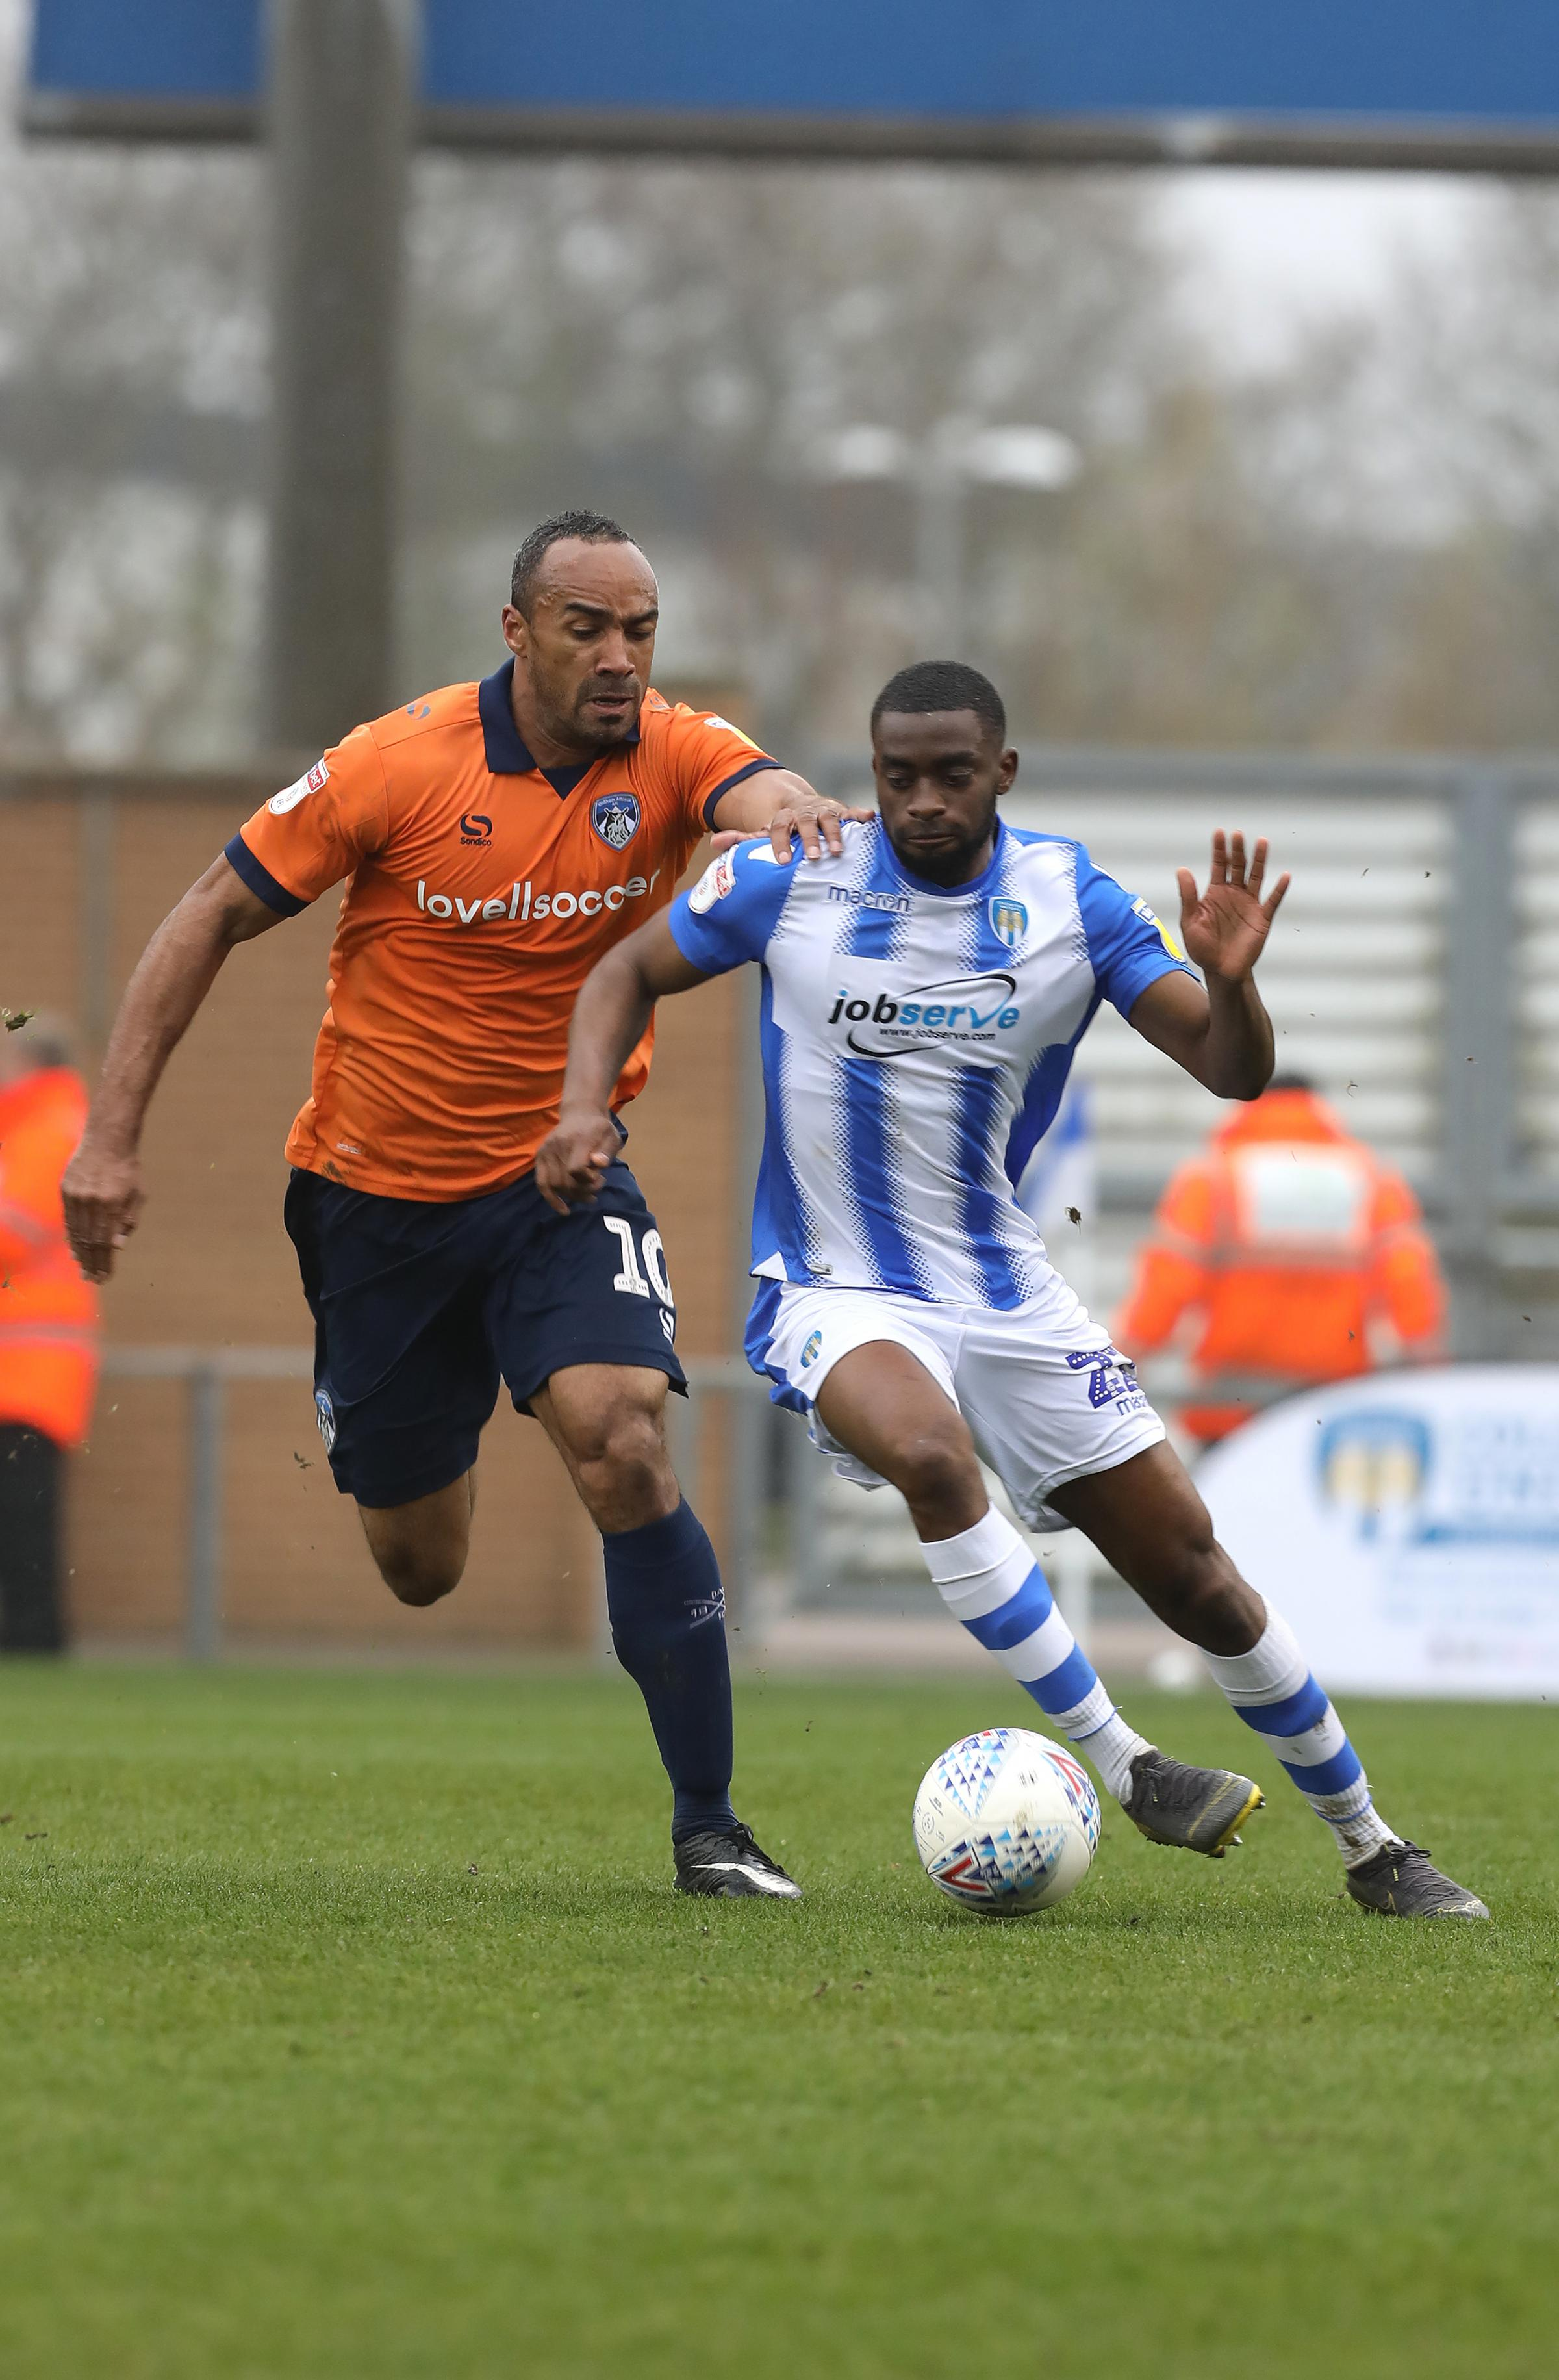 Sidelined - Colchester United defender Kane Vincent-Young missed the 1-1 draw with Yeovil Town because of a abdominal injury Picture: STEVE BRADING